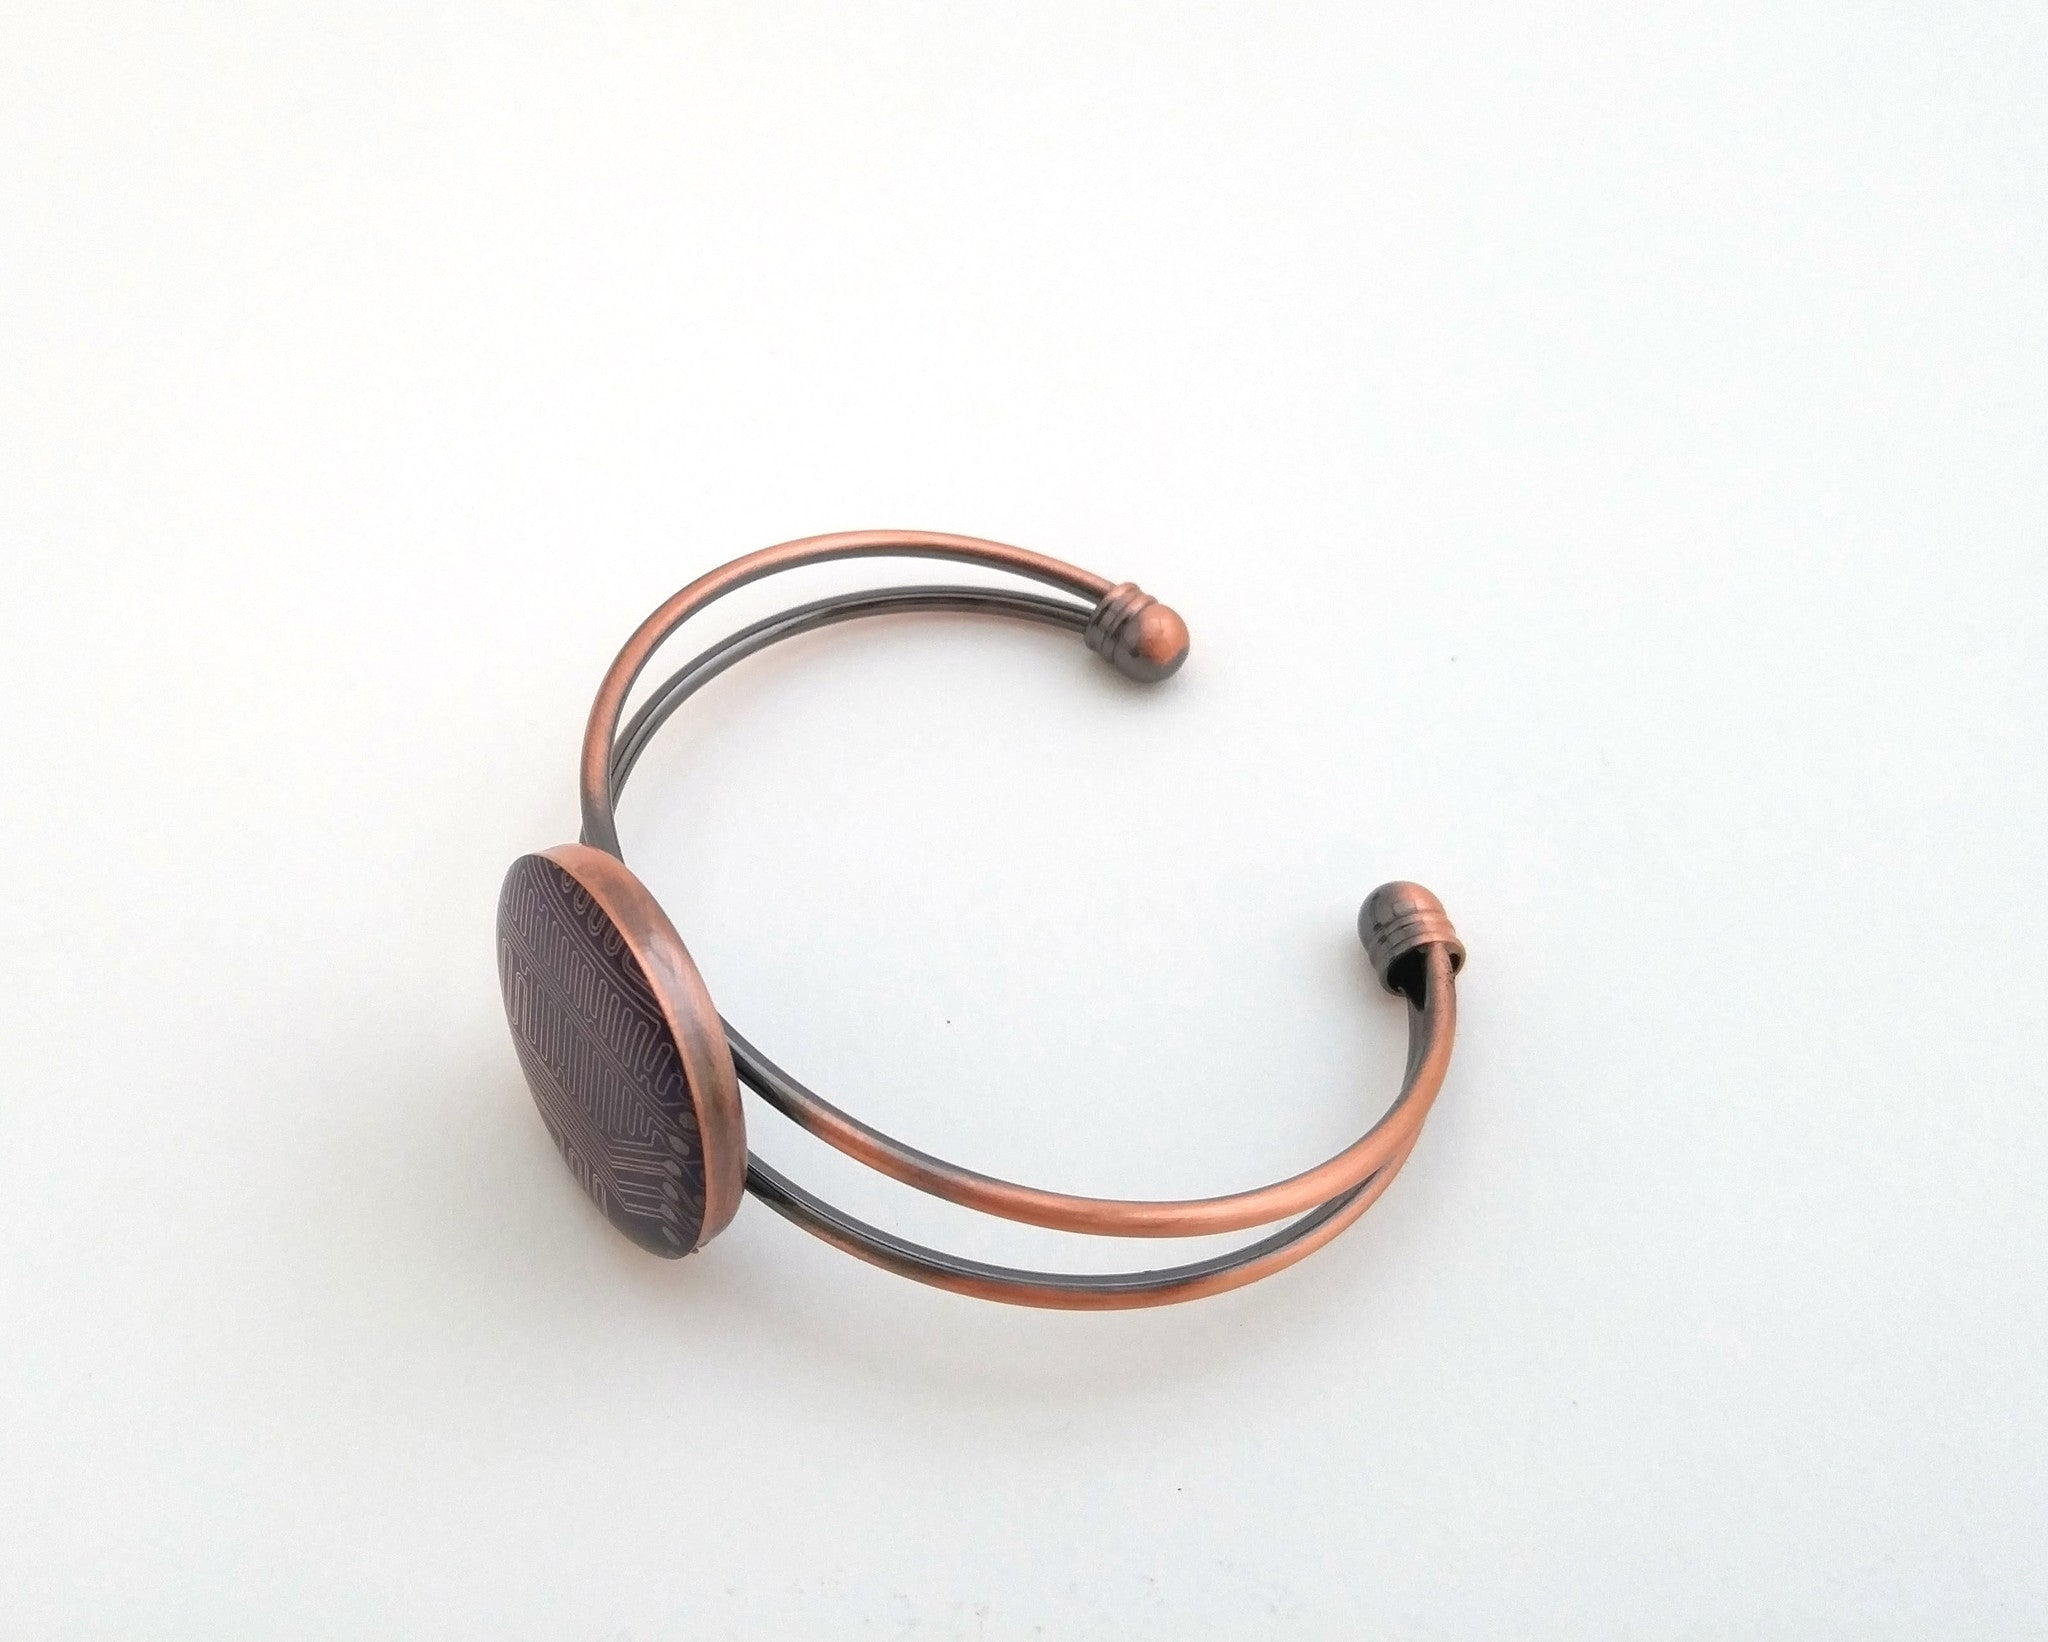 Circuit Board Copper Cuff Bracelet